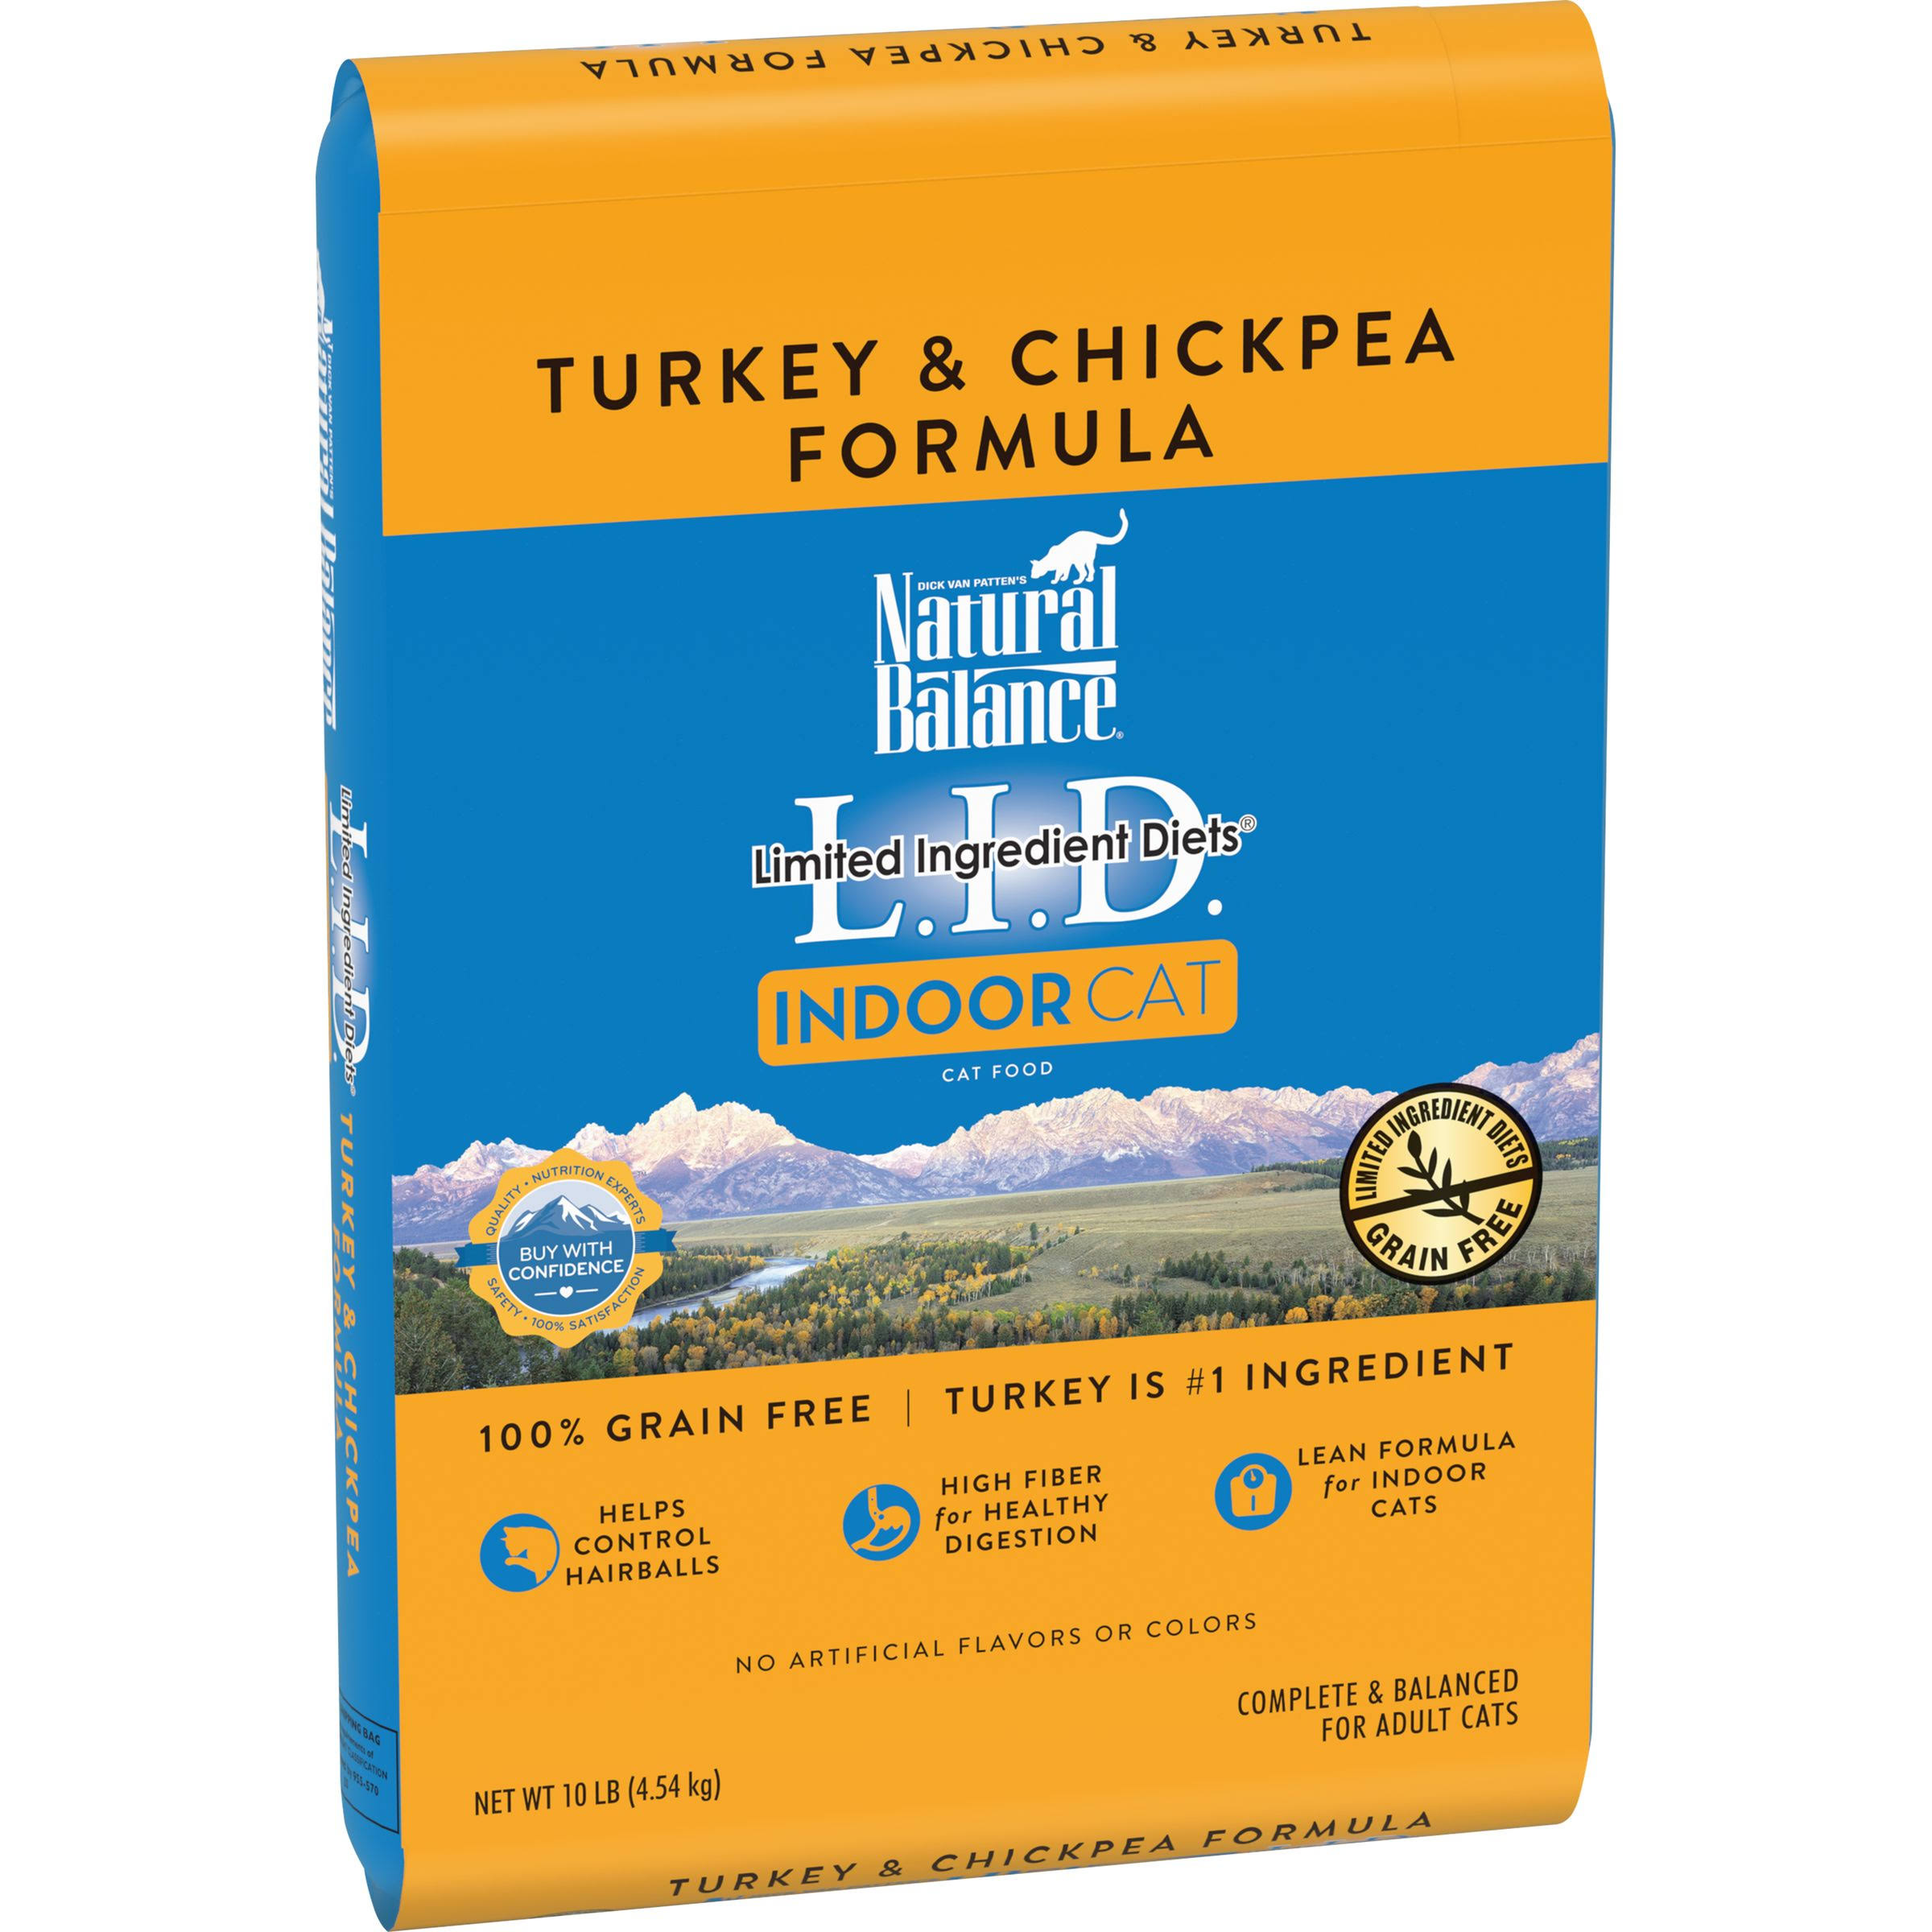 Natural Balance L.I.D. Limited Ingredient Diets Cat Food, Indoor Cat, Turkey & Chickpea Formula - 10 lb